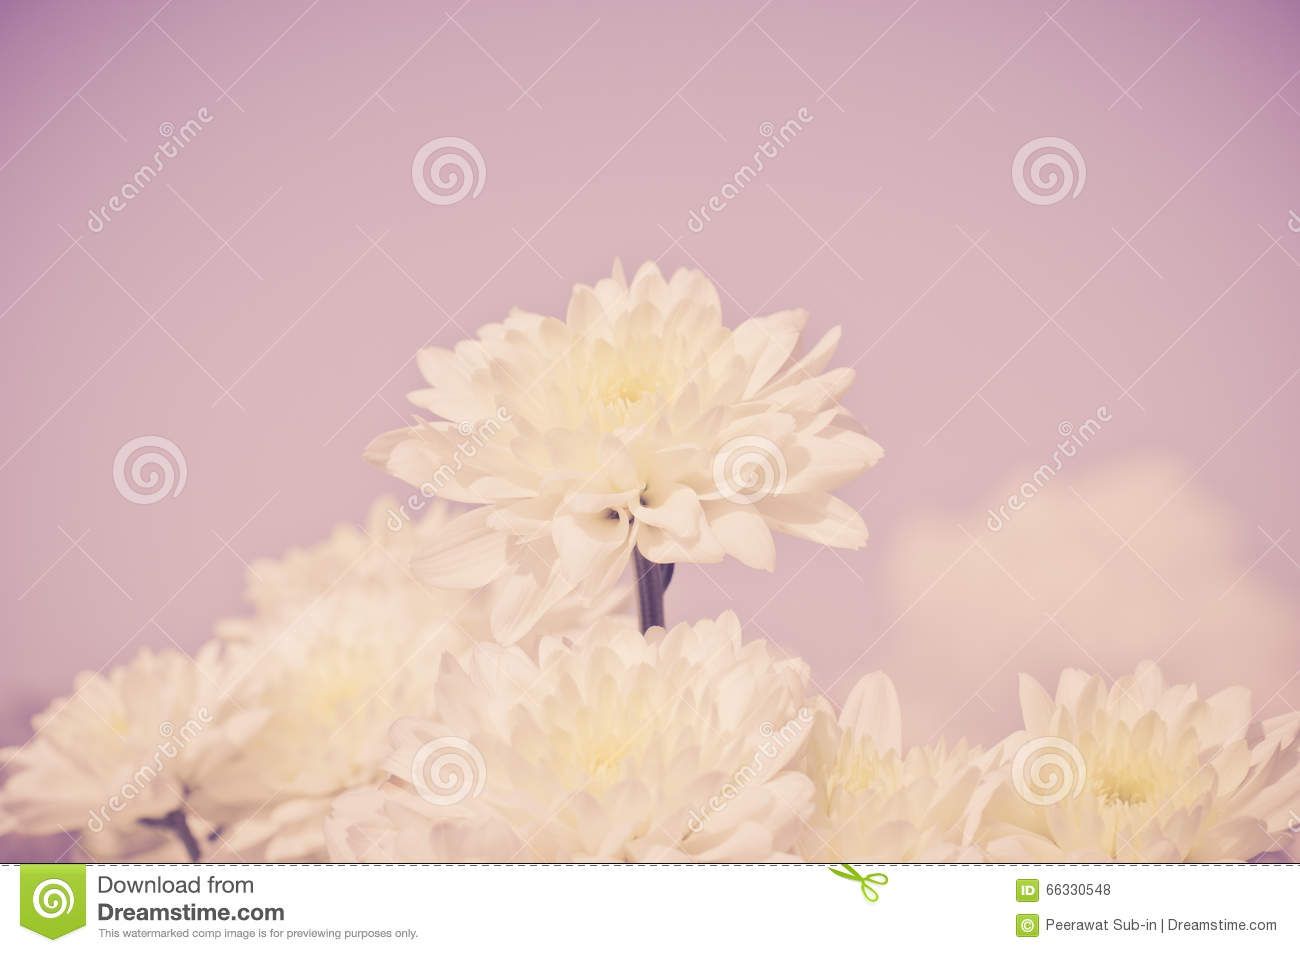 White chrysanthemum flower with old dark pink color filter